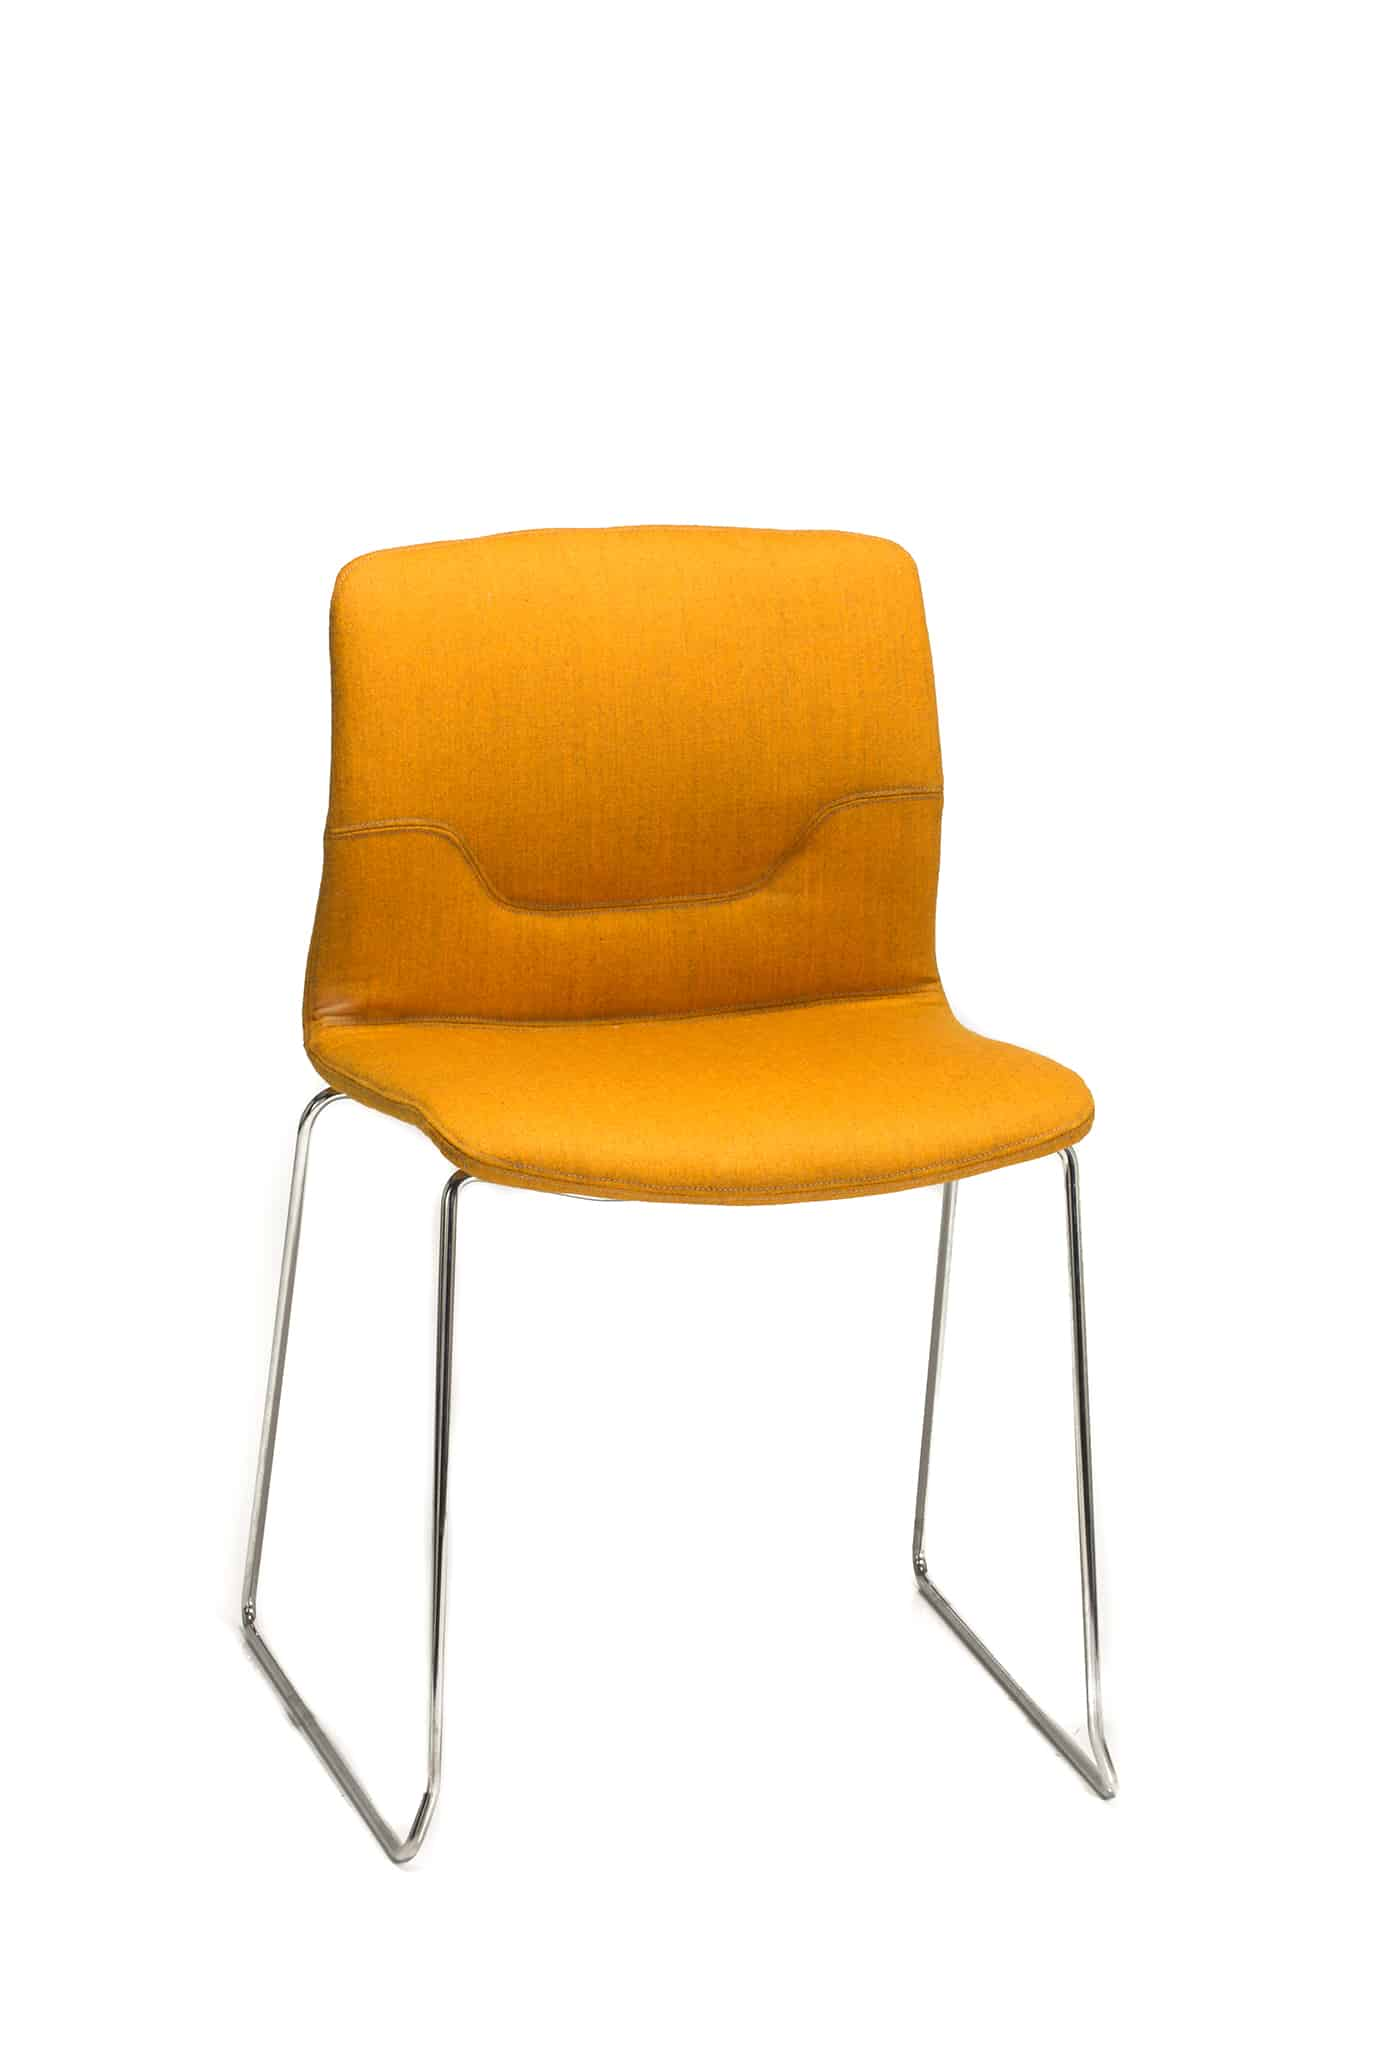 orange all-white Capper chair with fixed legs